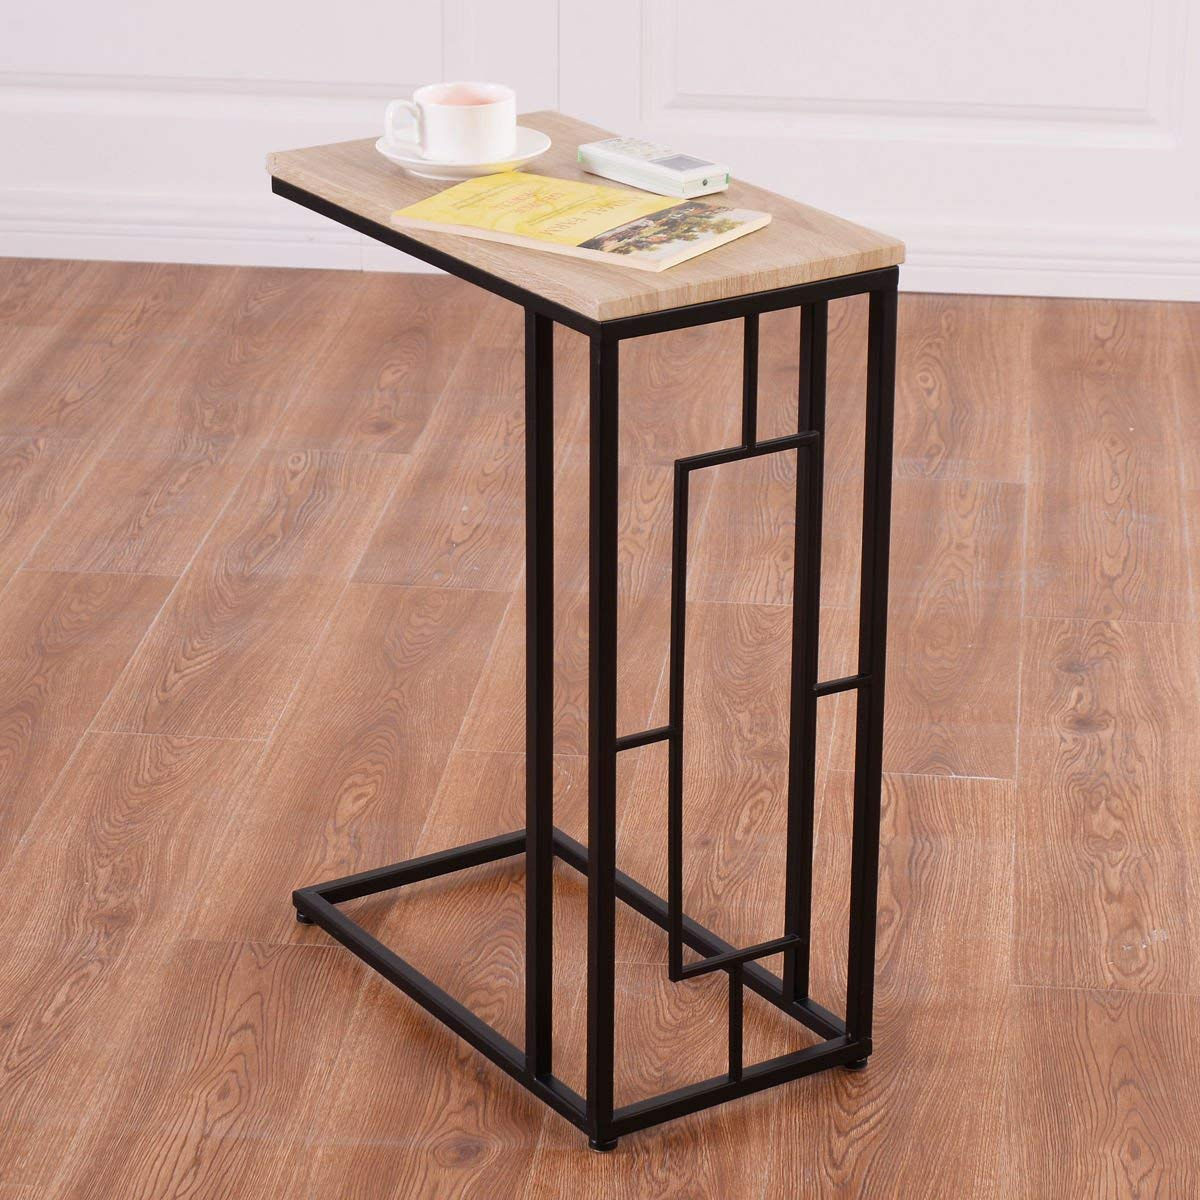 KCHEX>Modern Coffee Tray Side Sofa End Table Ottoman Couch Room Stand TV Lap Snack>Our modern C shape coffee tray side sofa end table Can be used as end tables, lamp tables, decorative displays tables